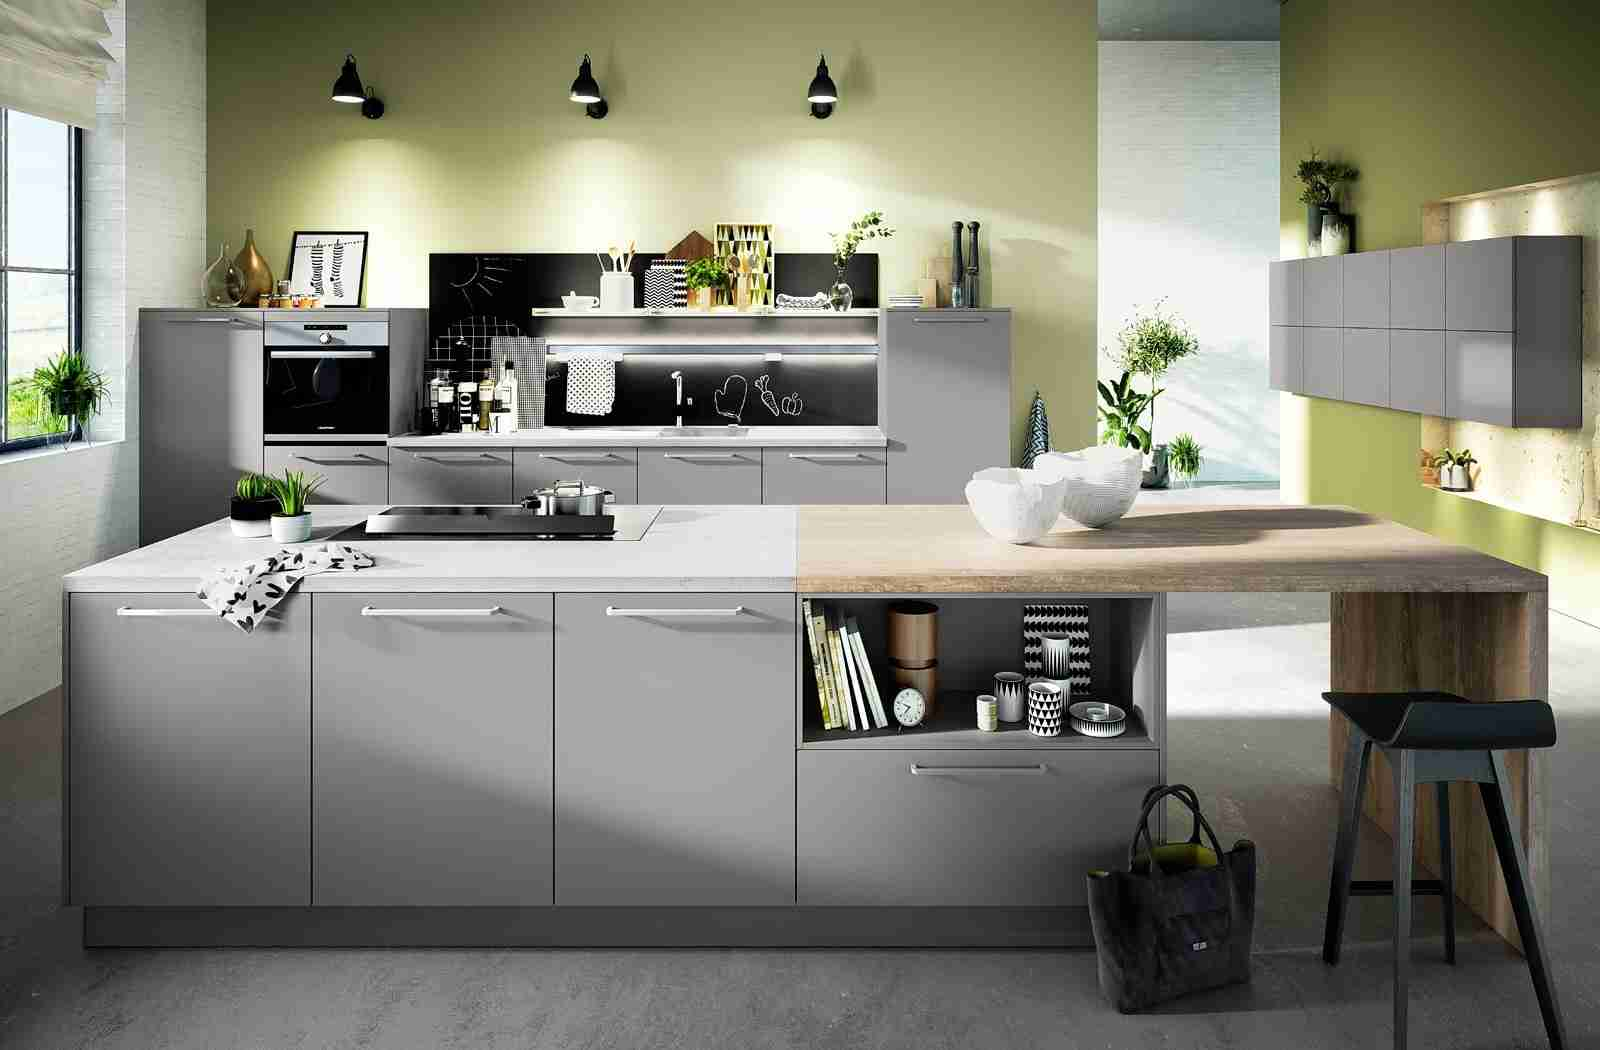 Solid Wood Kitchen Stylish Ideas for Modern Interiors. Light wooden countertop